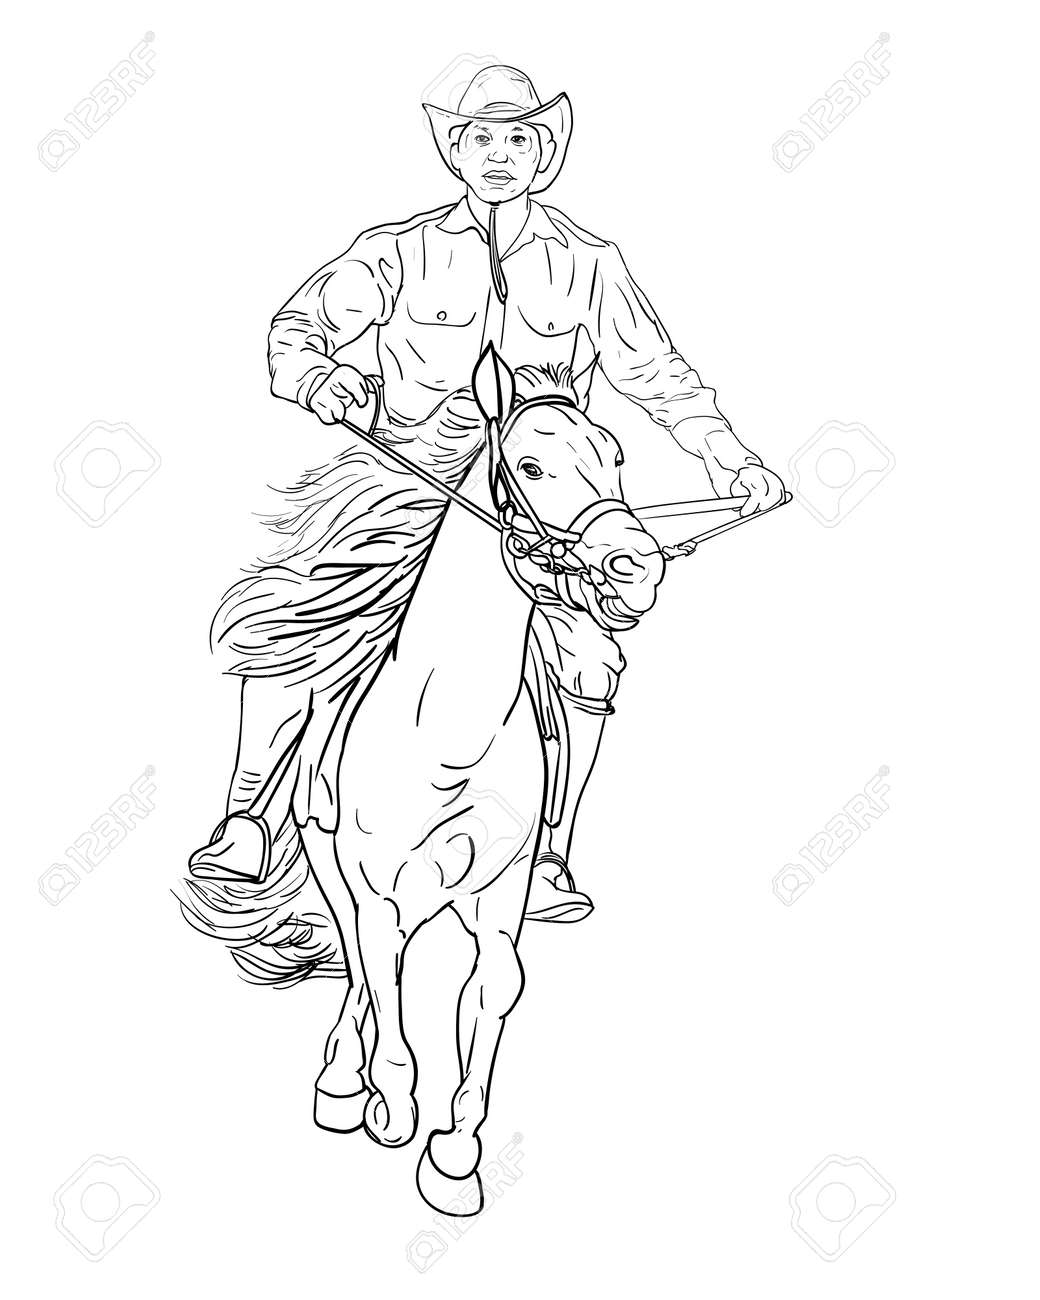 Drawing Black And White Of Cowboy Riding Horse Vector Illustration Royalty Free Cliparts Vectors And Stock Illustration Image 109932726